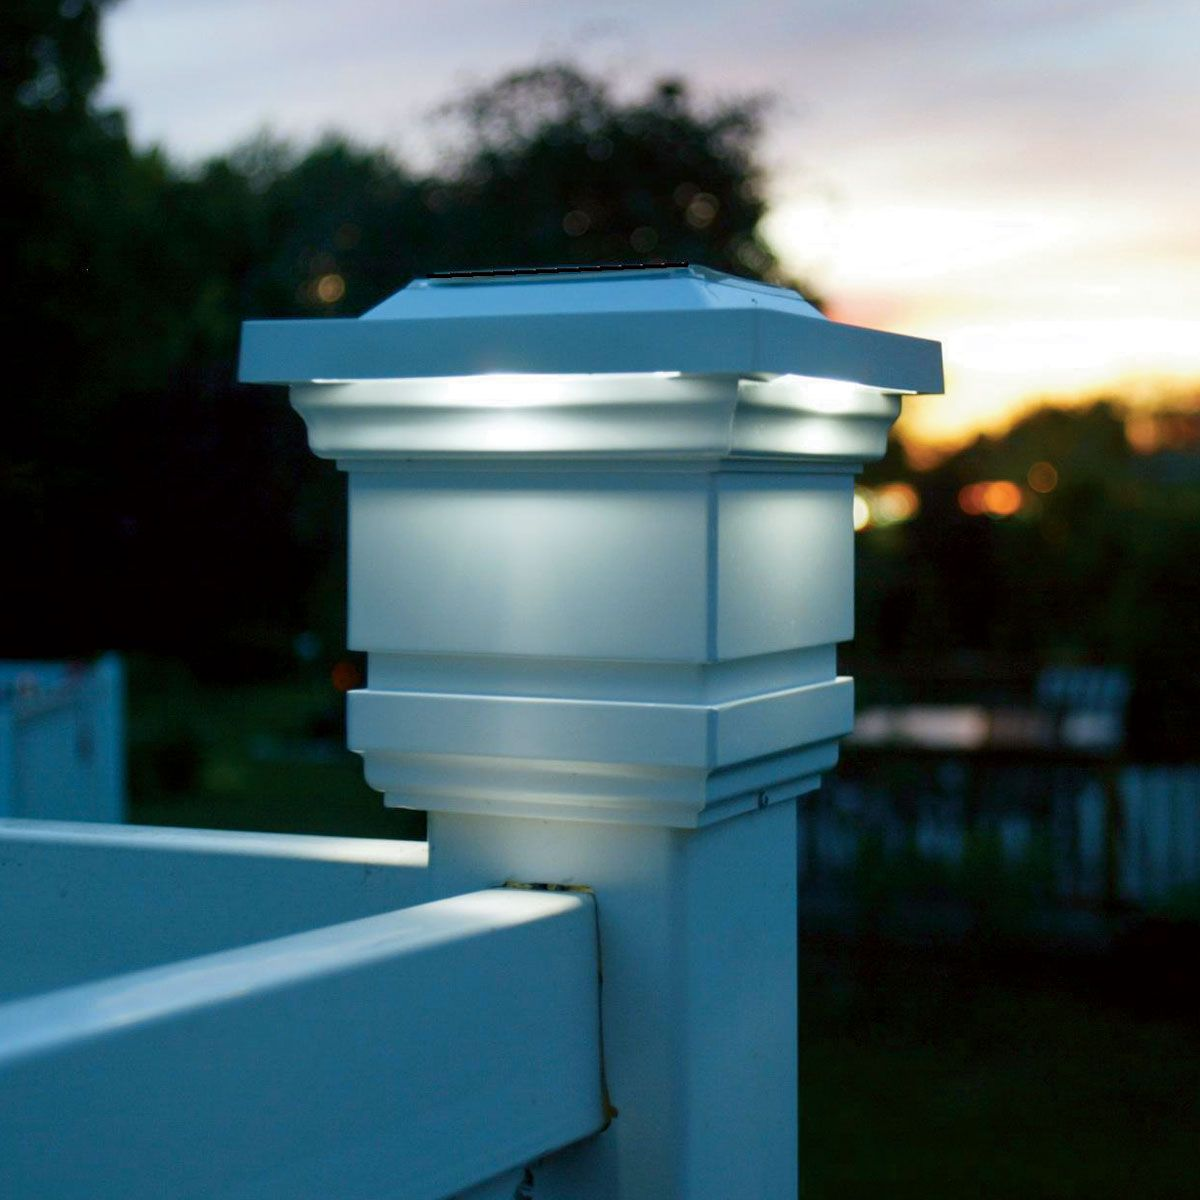 Decorative By Day Radiant By Night Enhance The Beauty And Charm Of Your Home With The Addition Of These Attractive Solar Lamp Post Light Vinyl Fence Post Cap